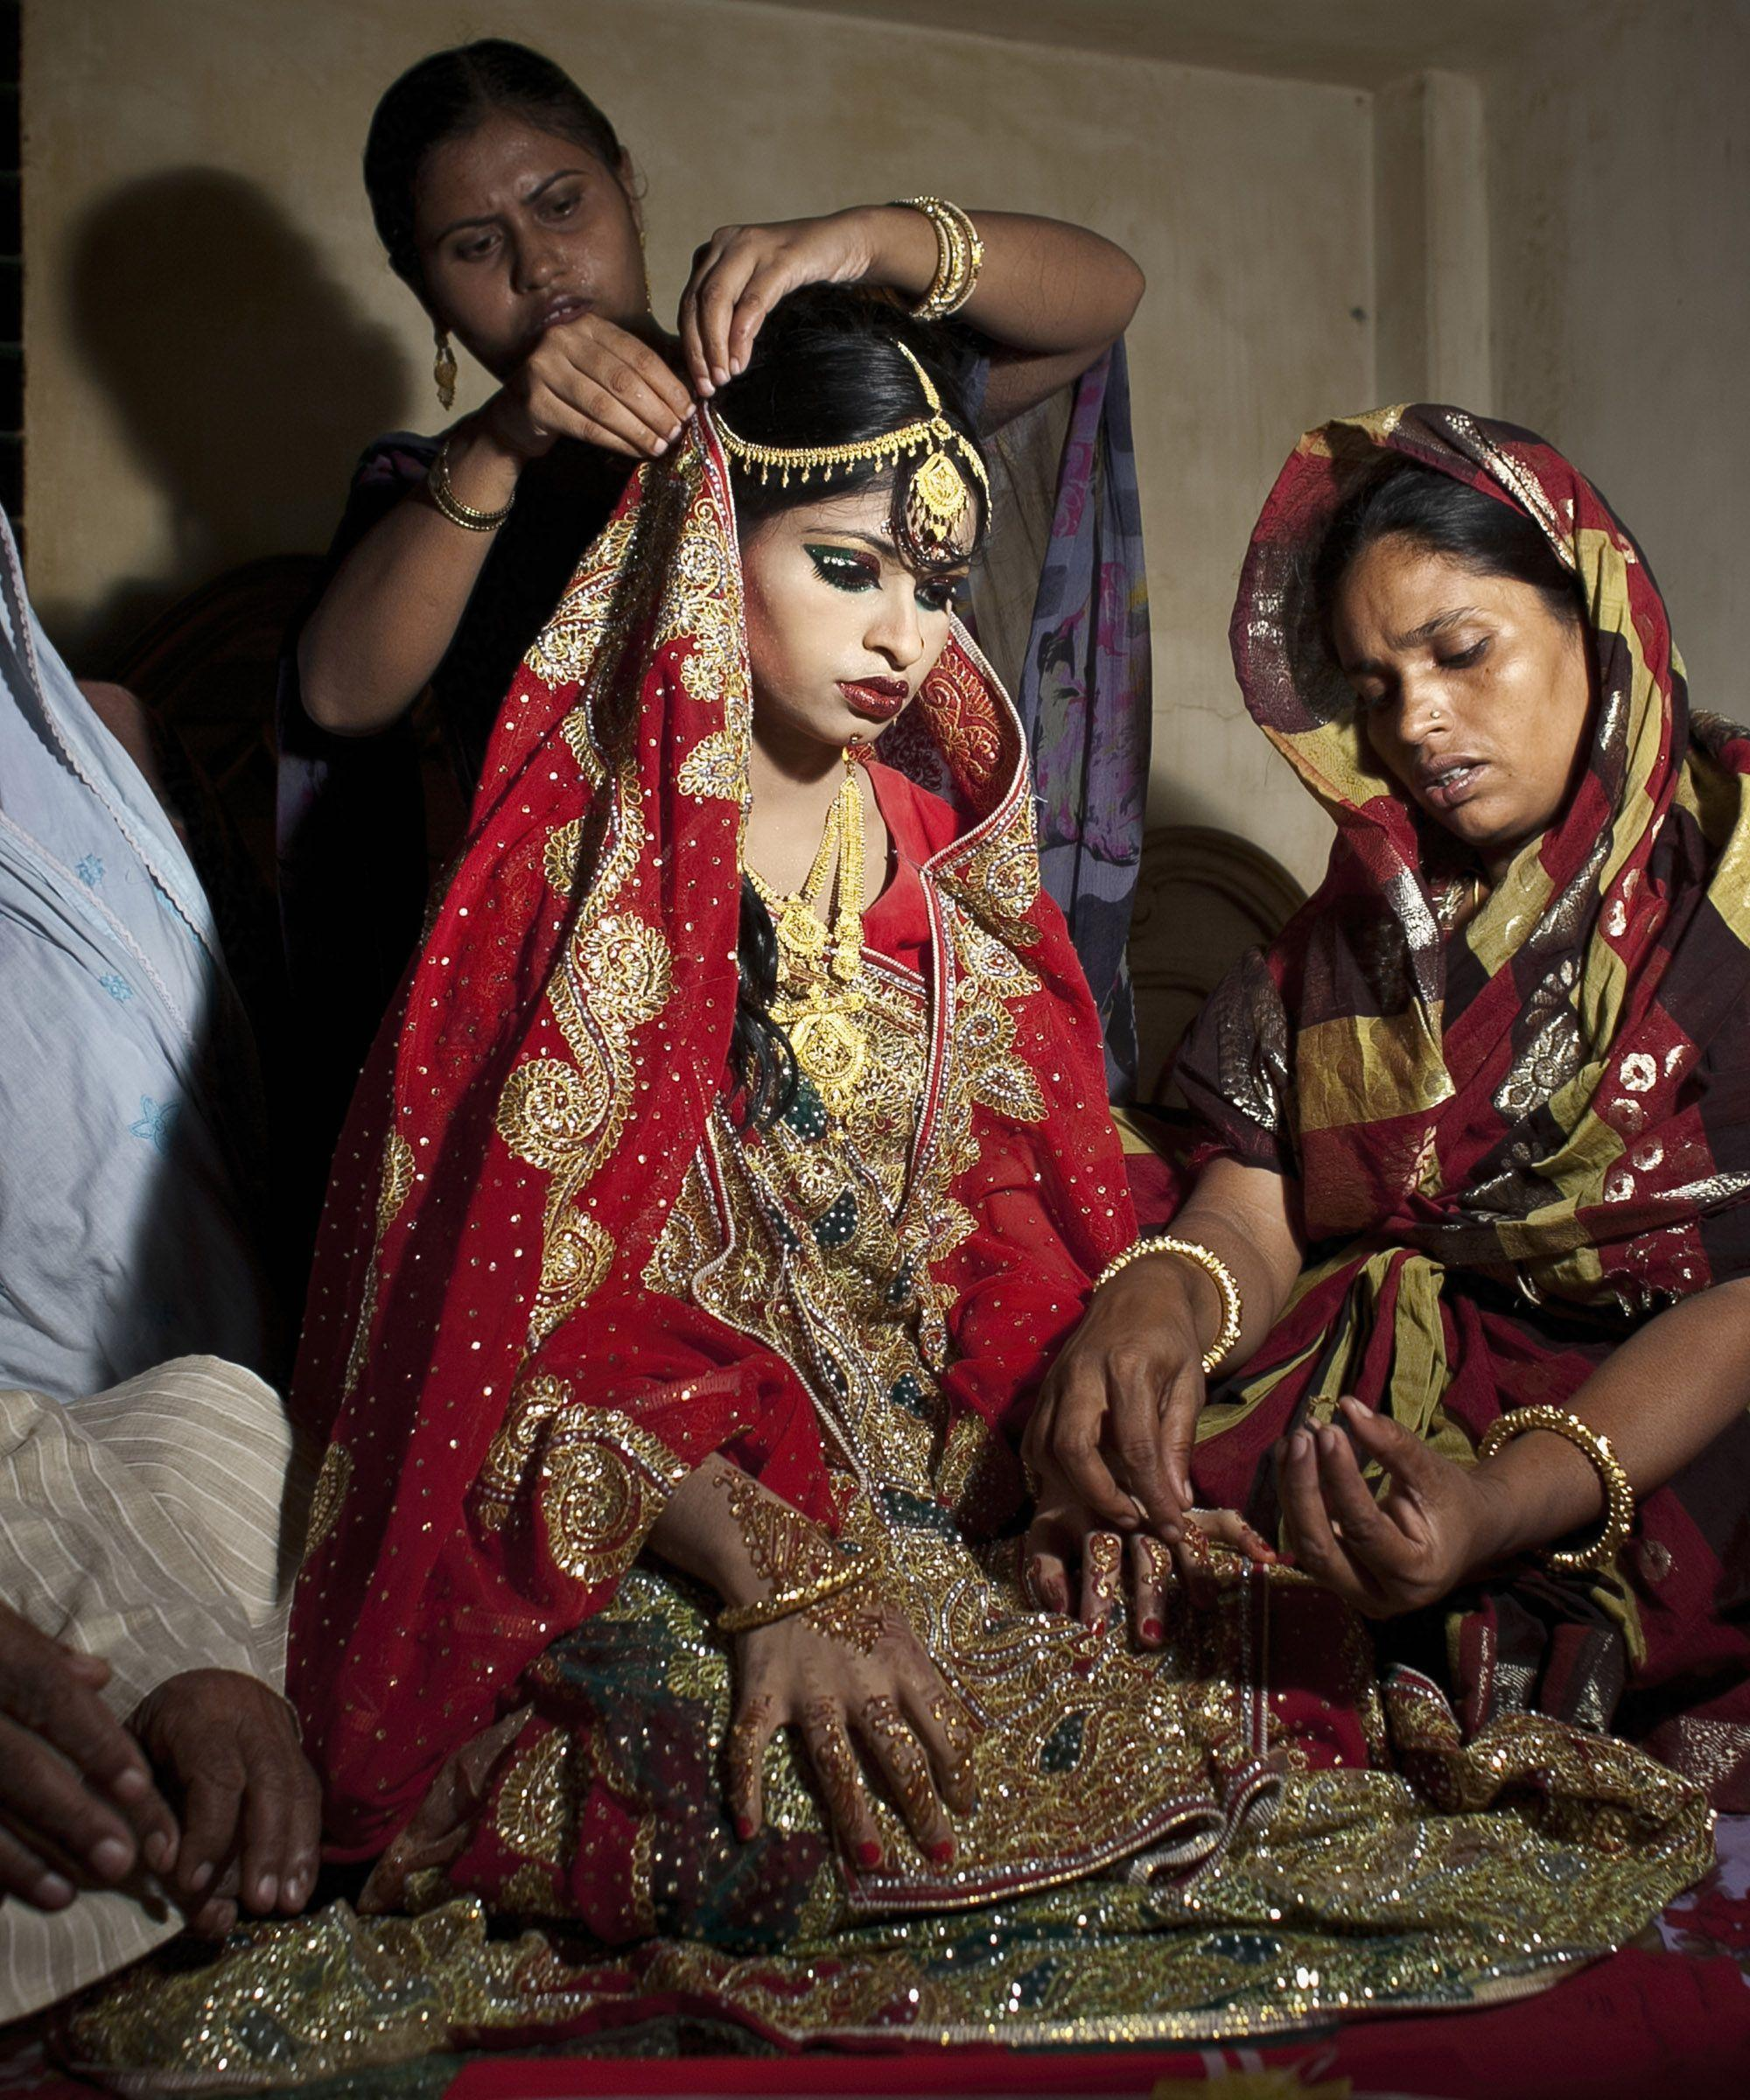 haunting photos of a year old forced to marry a man twice her age